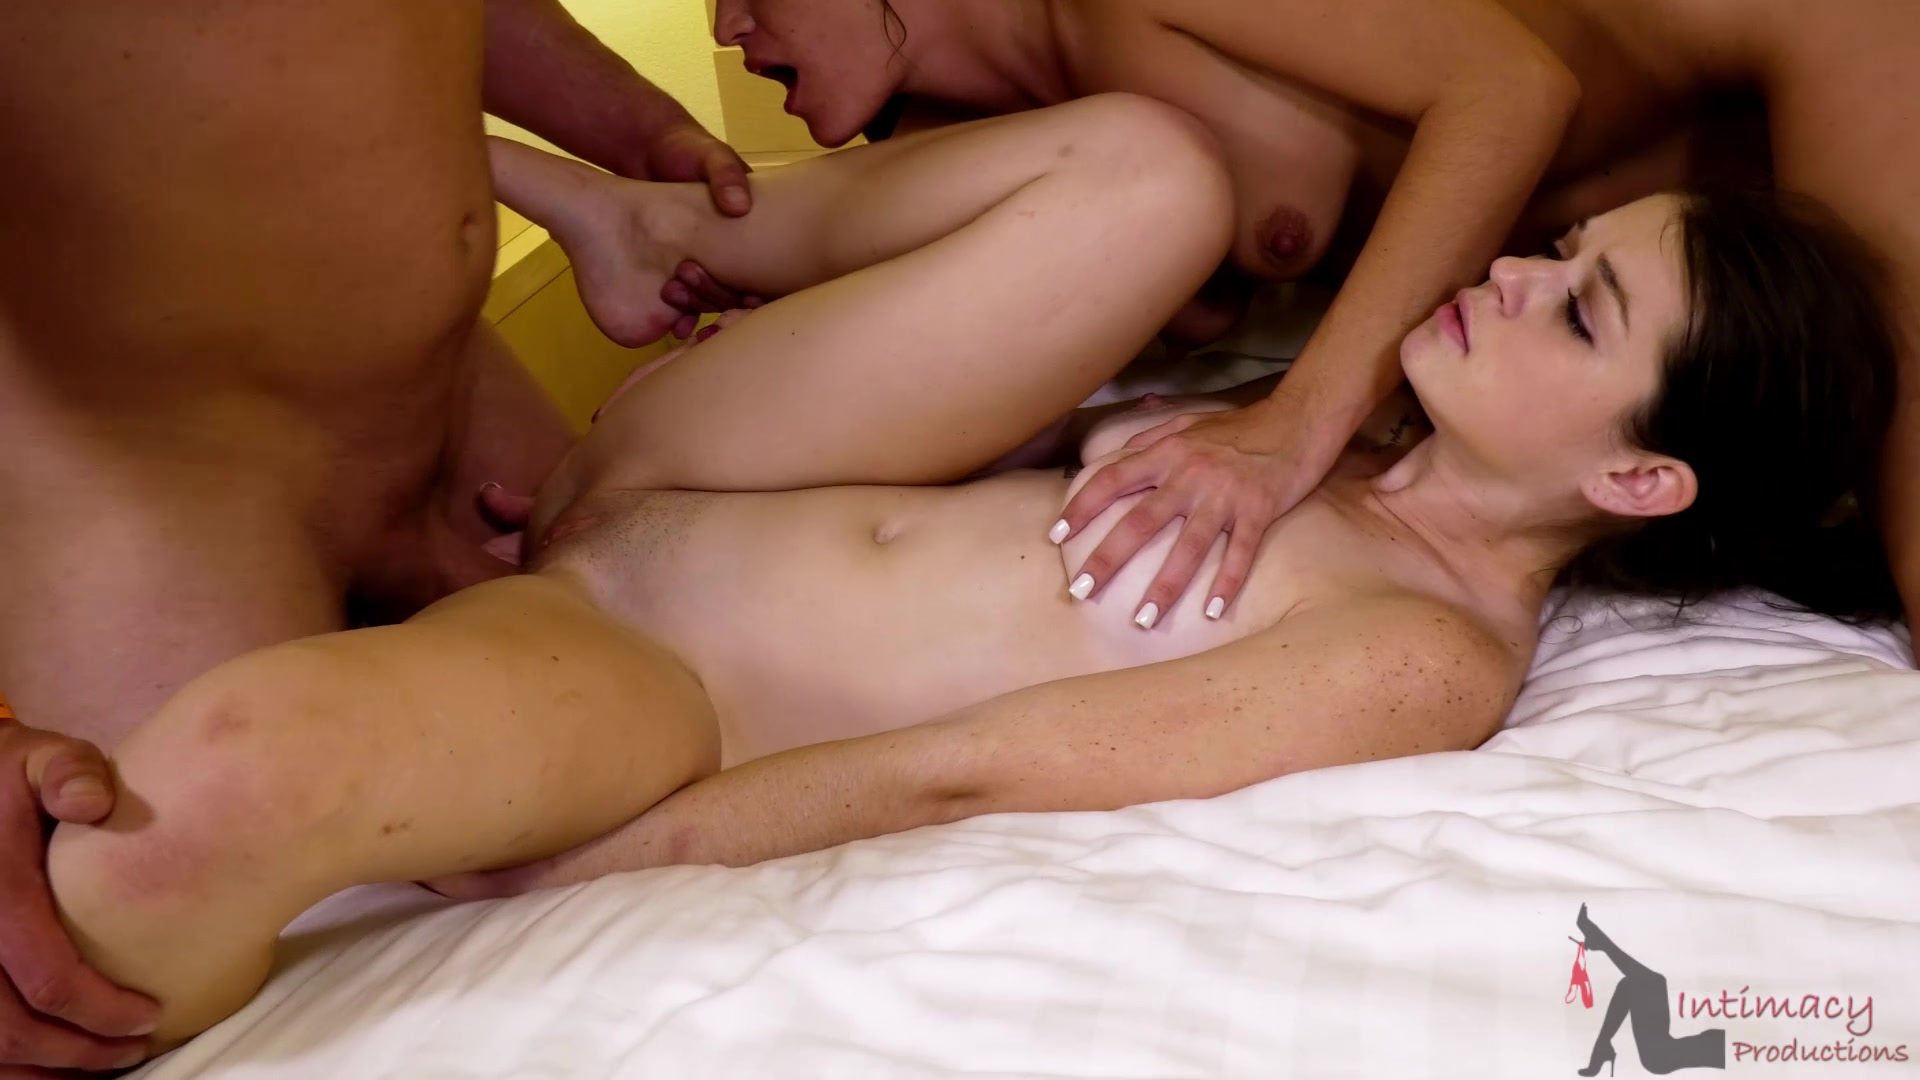 squirting anal 3some videos on demand | adult dvd empire